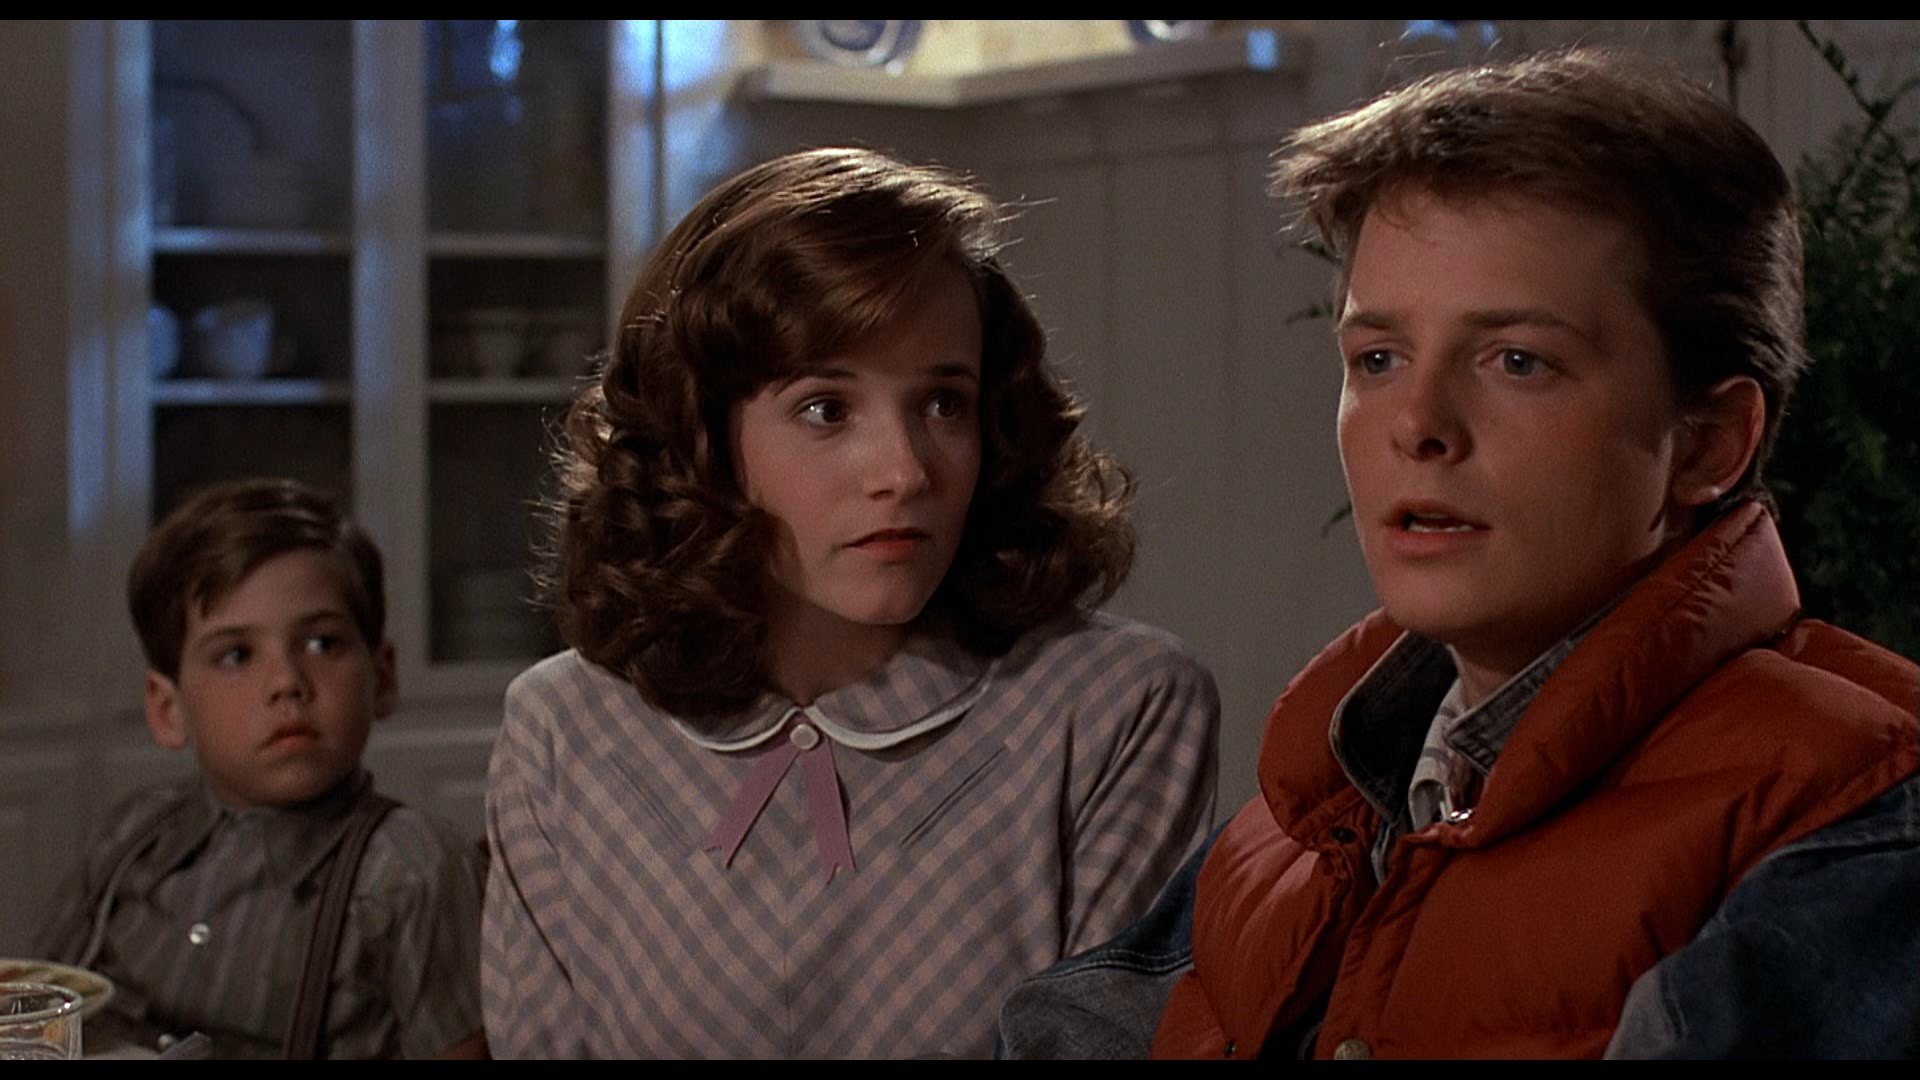 1920x1080 back to the future movie still desktop pc and